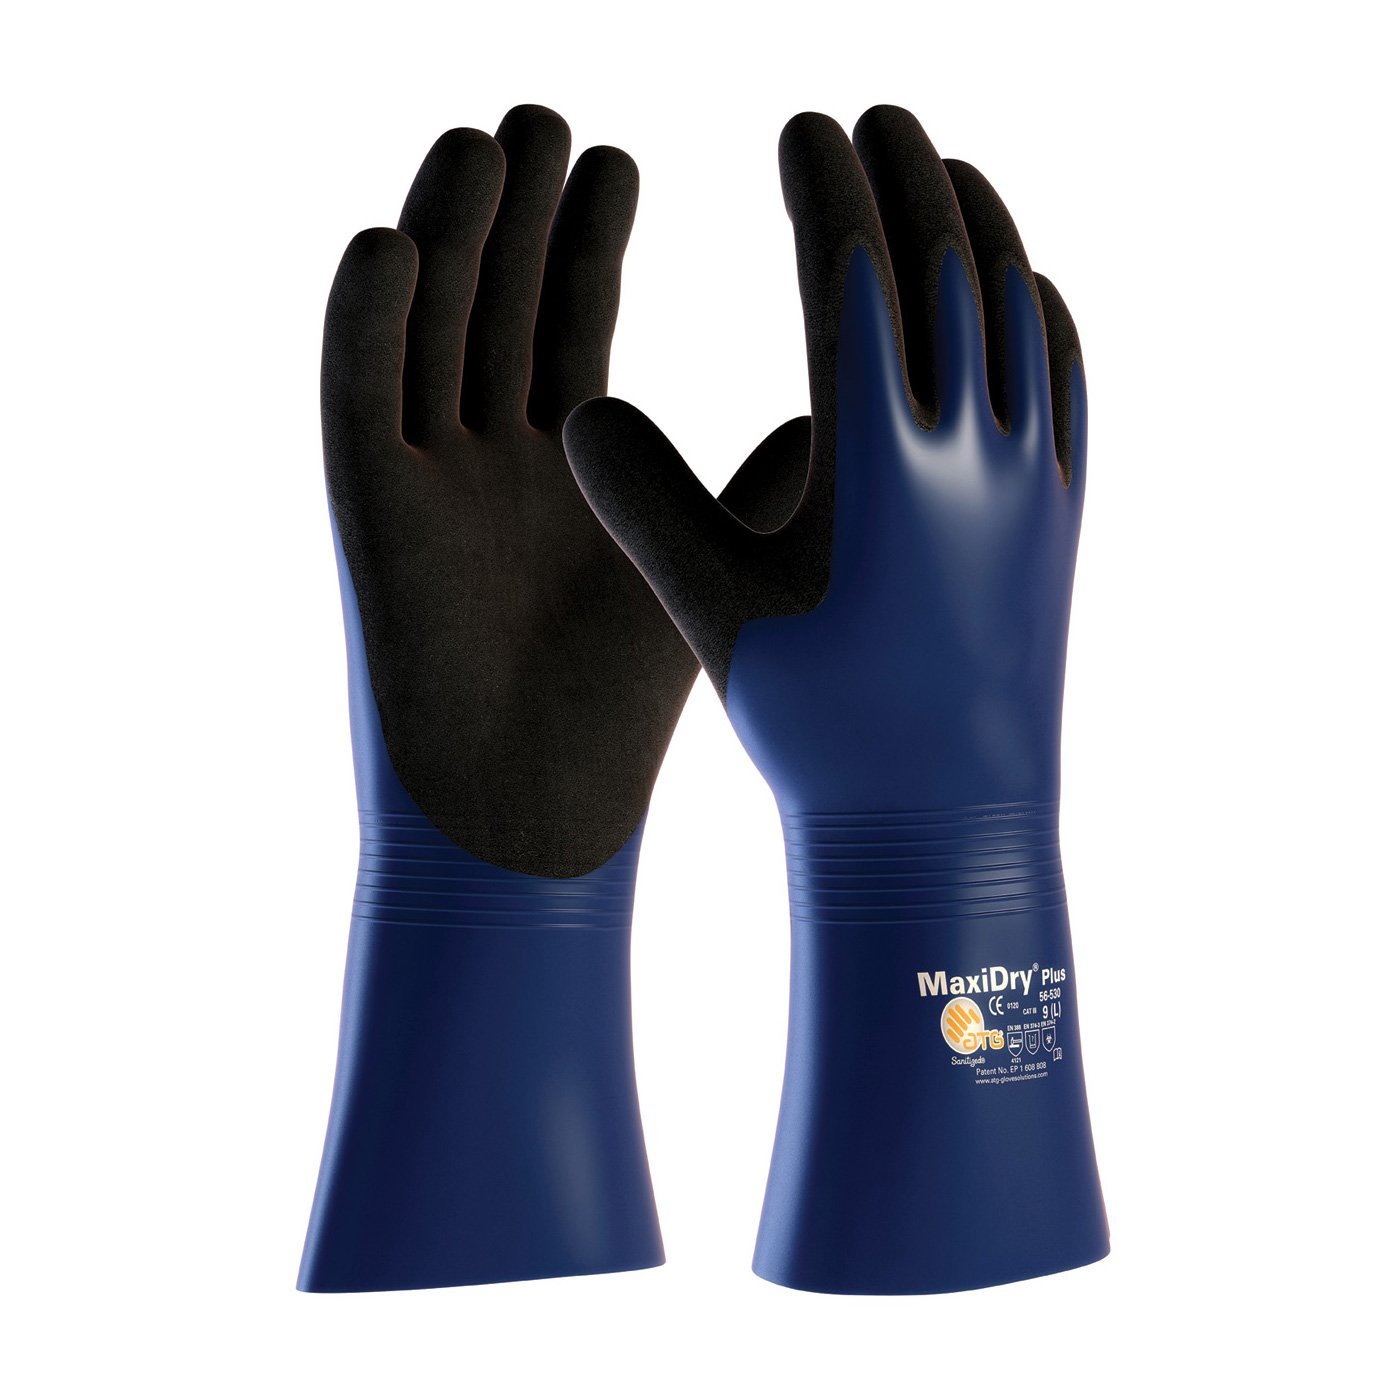 PIP MaxiDry Plus #56-530 Gloves - Dozen pair - Size: XLarge by PIP (Image #1)